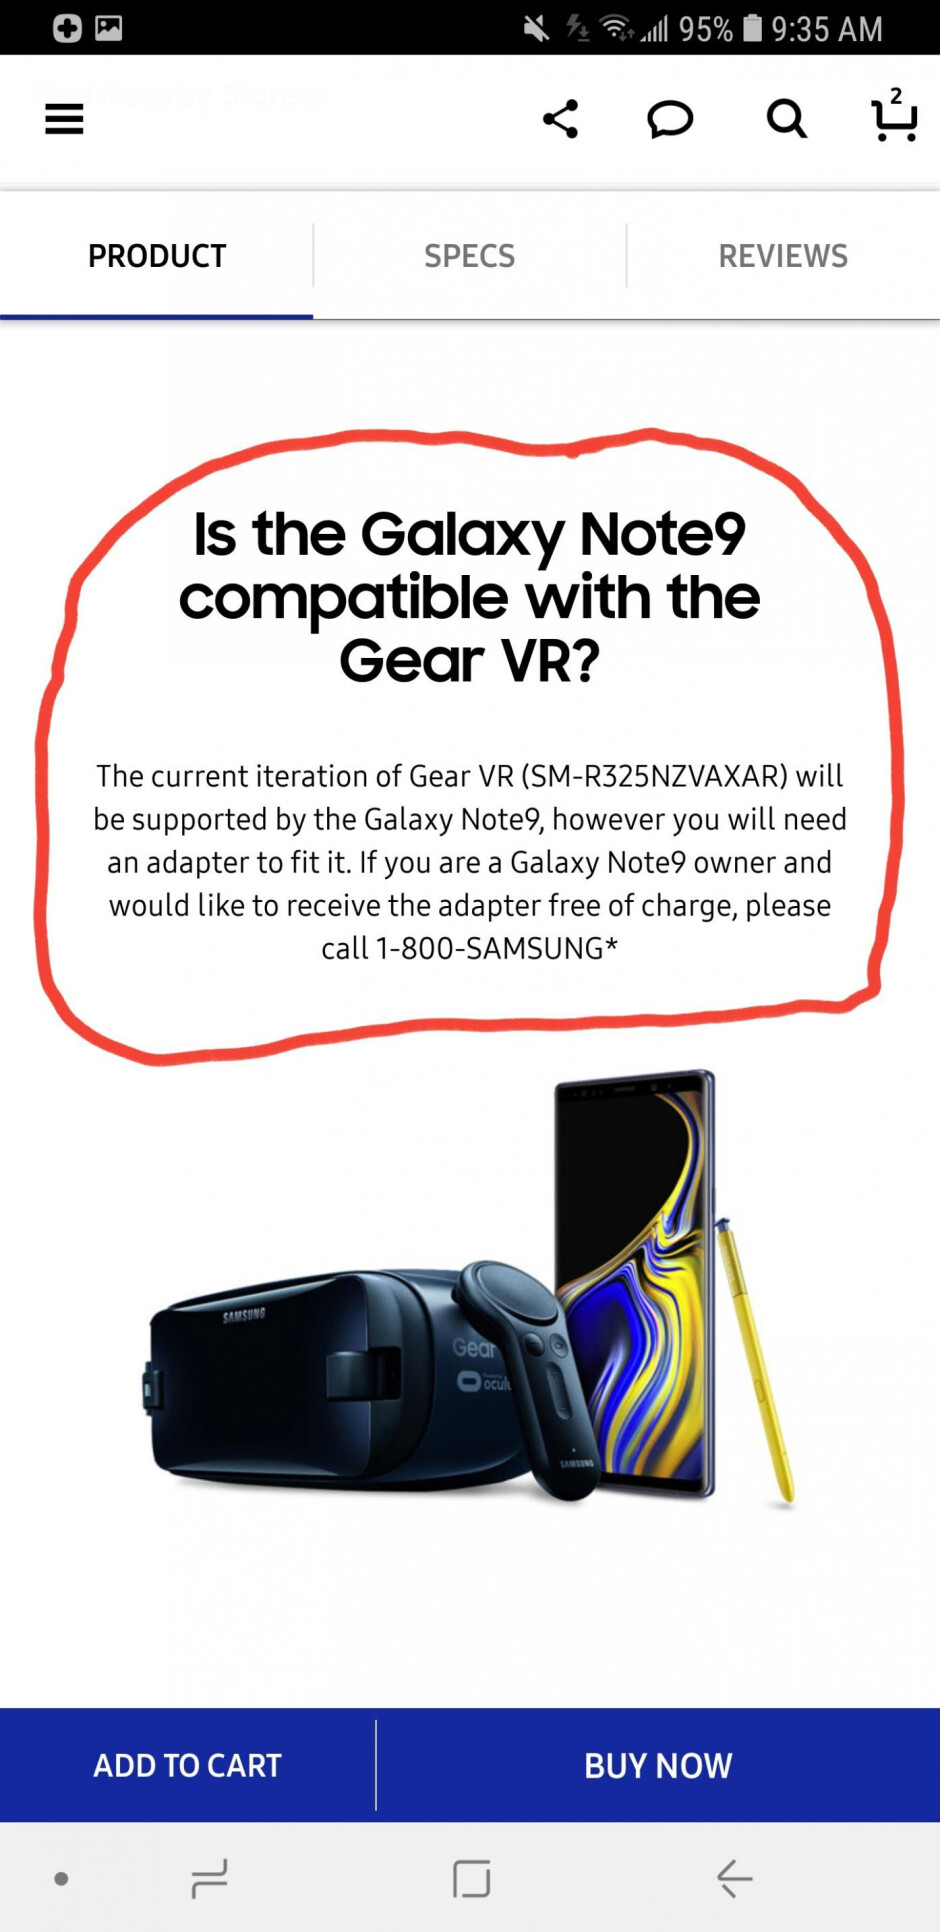 Samsung Galaxy Note 9 and the current Gear VR don't work together, but there's a workaround